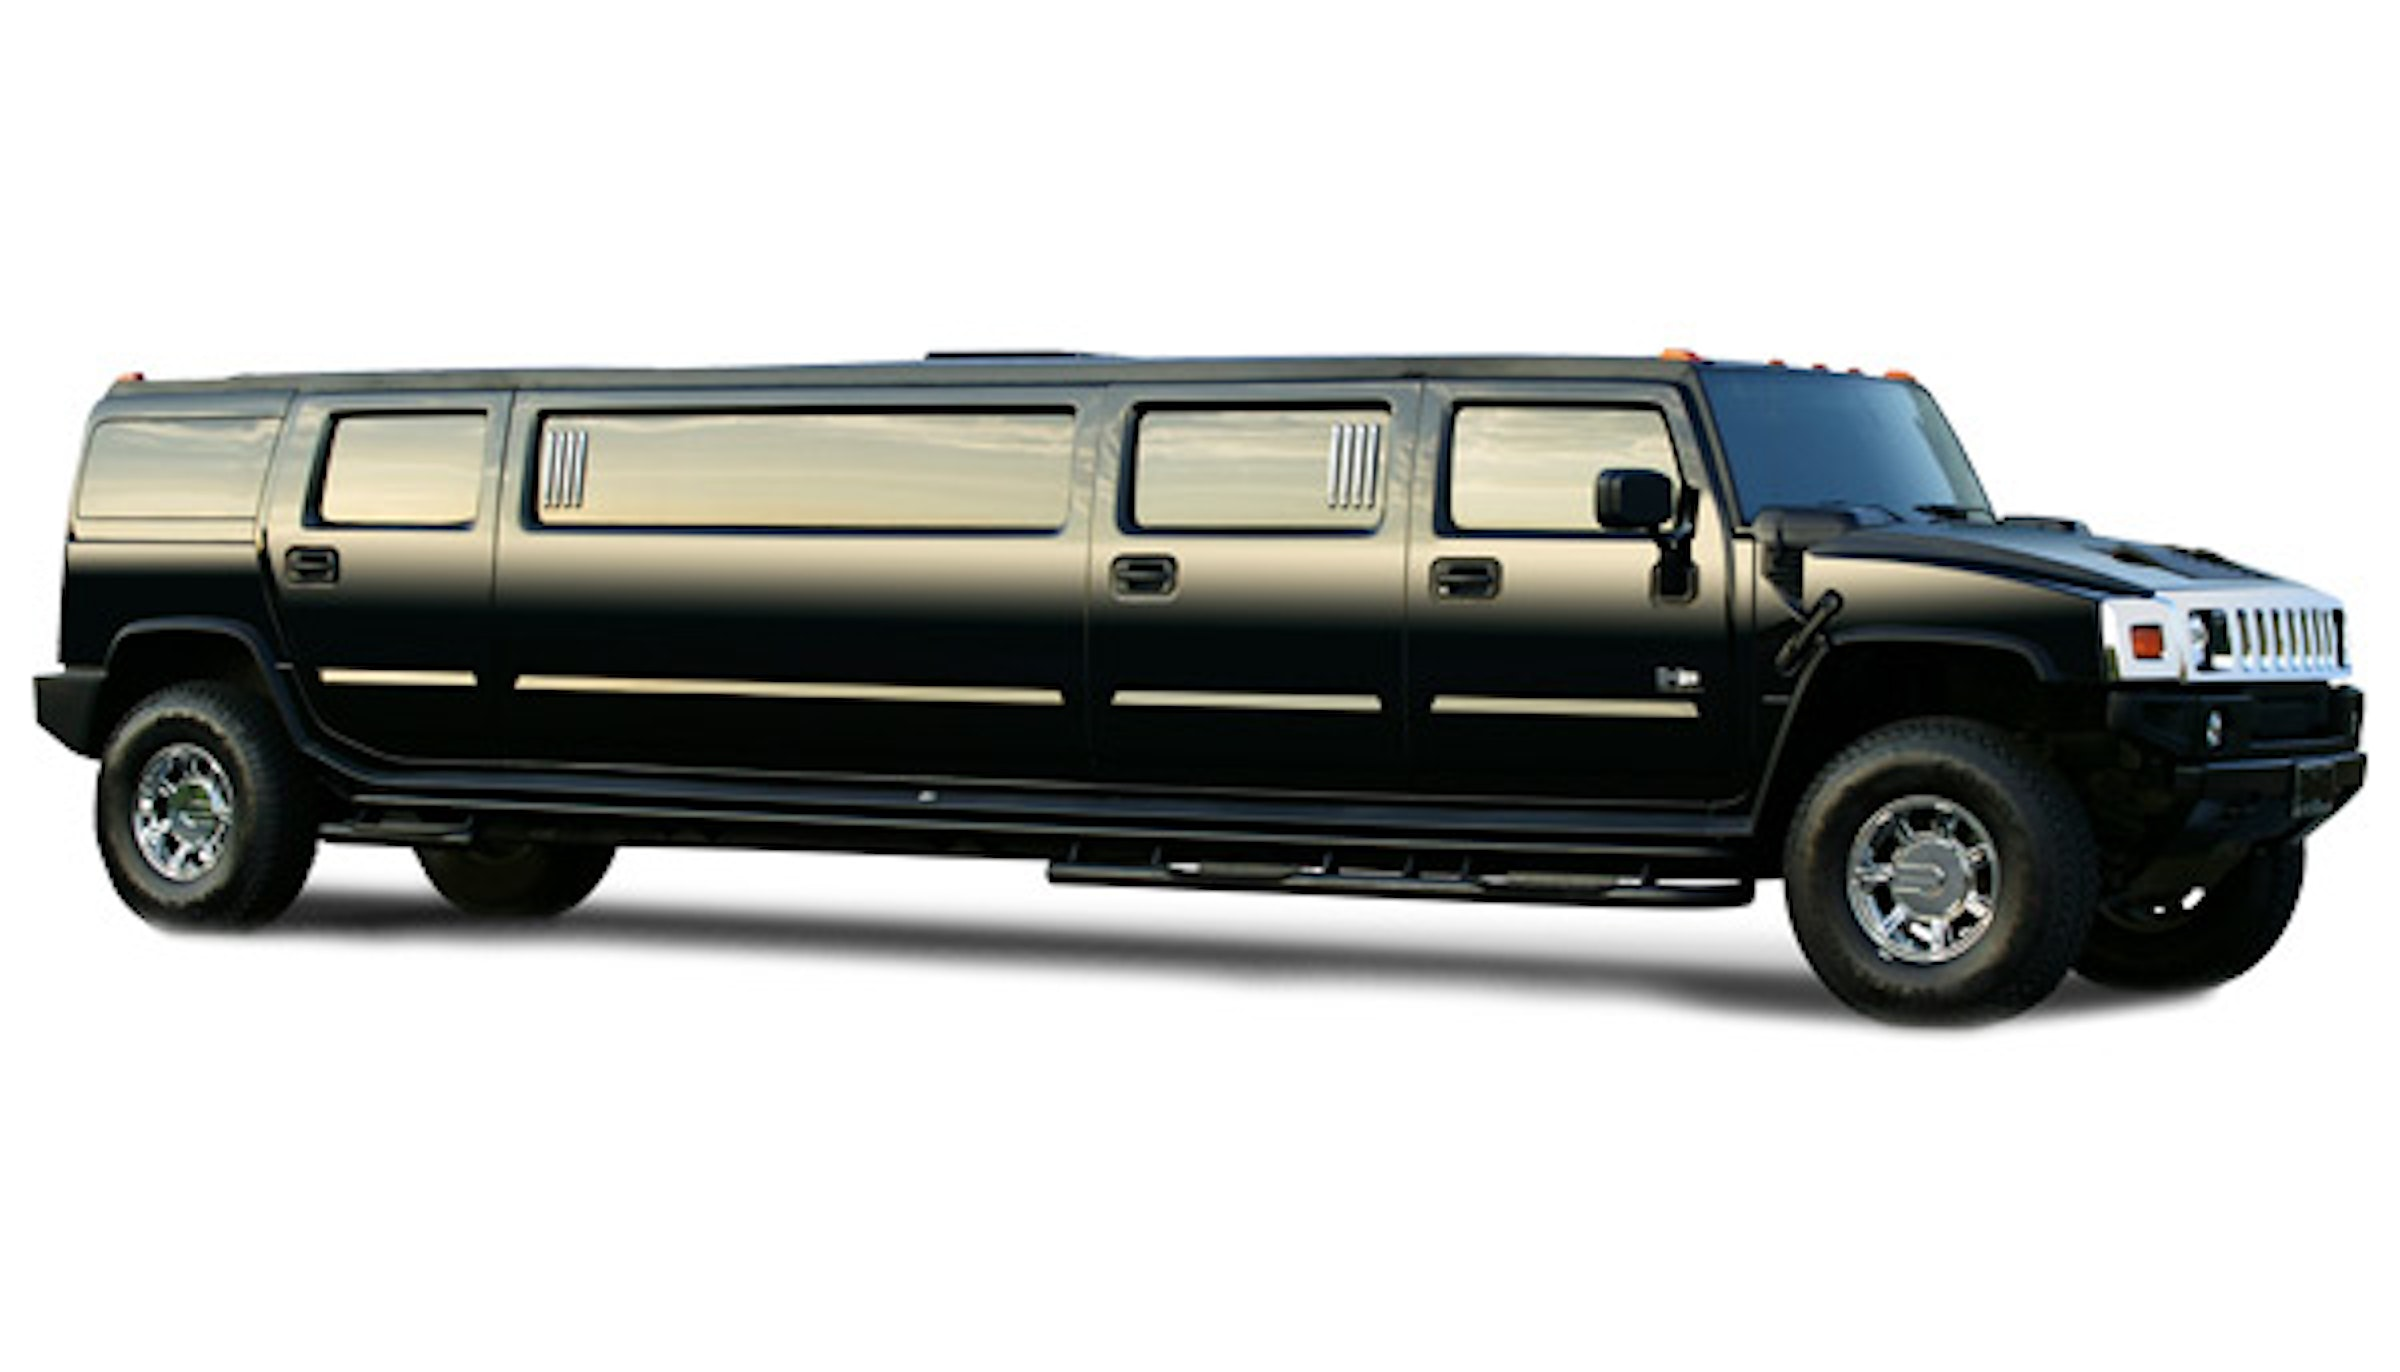 KRL- Kaan Royal Limousine Chauffeured Transportation in Beyond Dallas